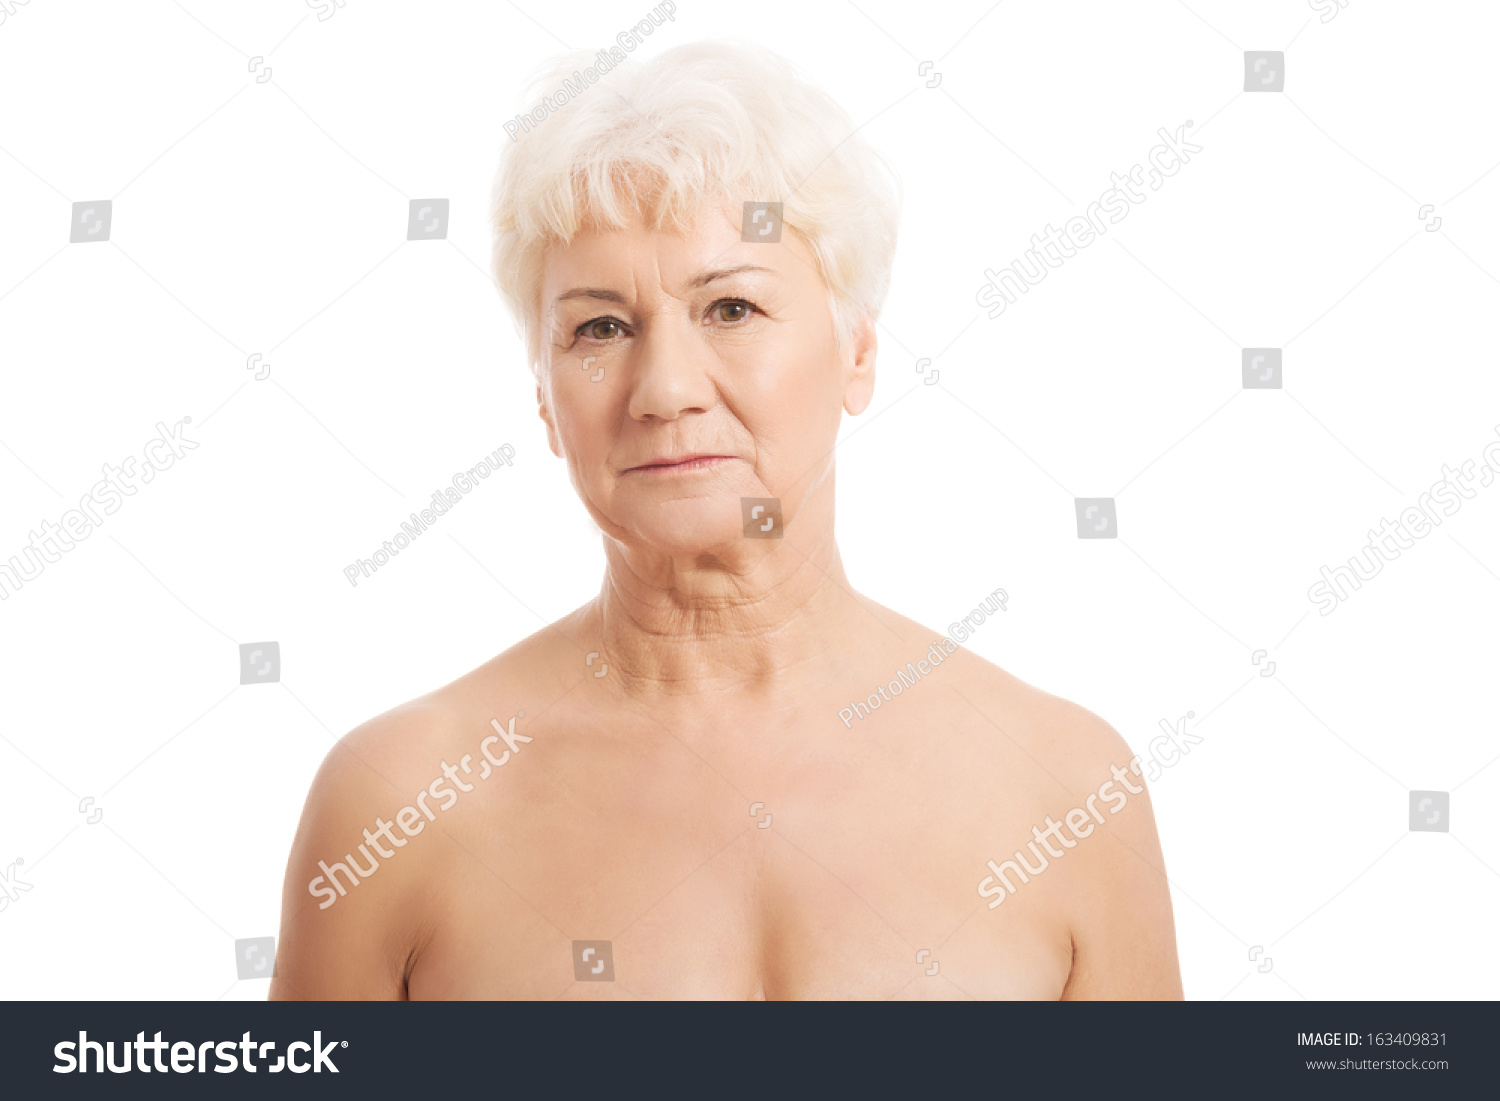 Portrait Of Nude Old Woman Head And Shoulders Isolated On White